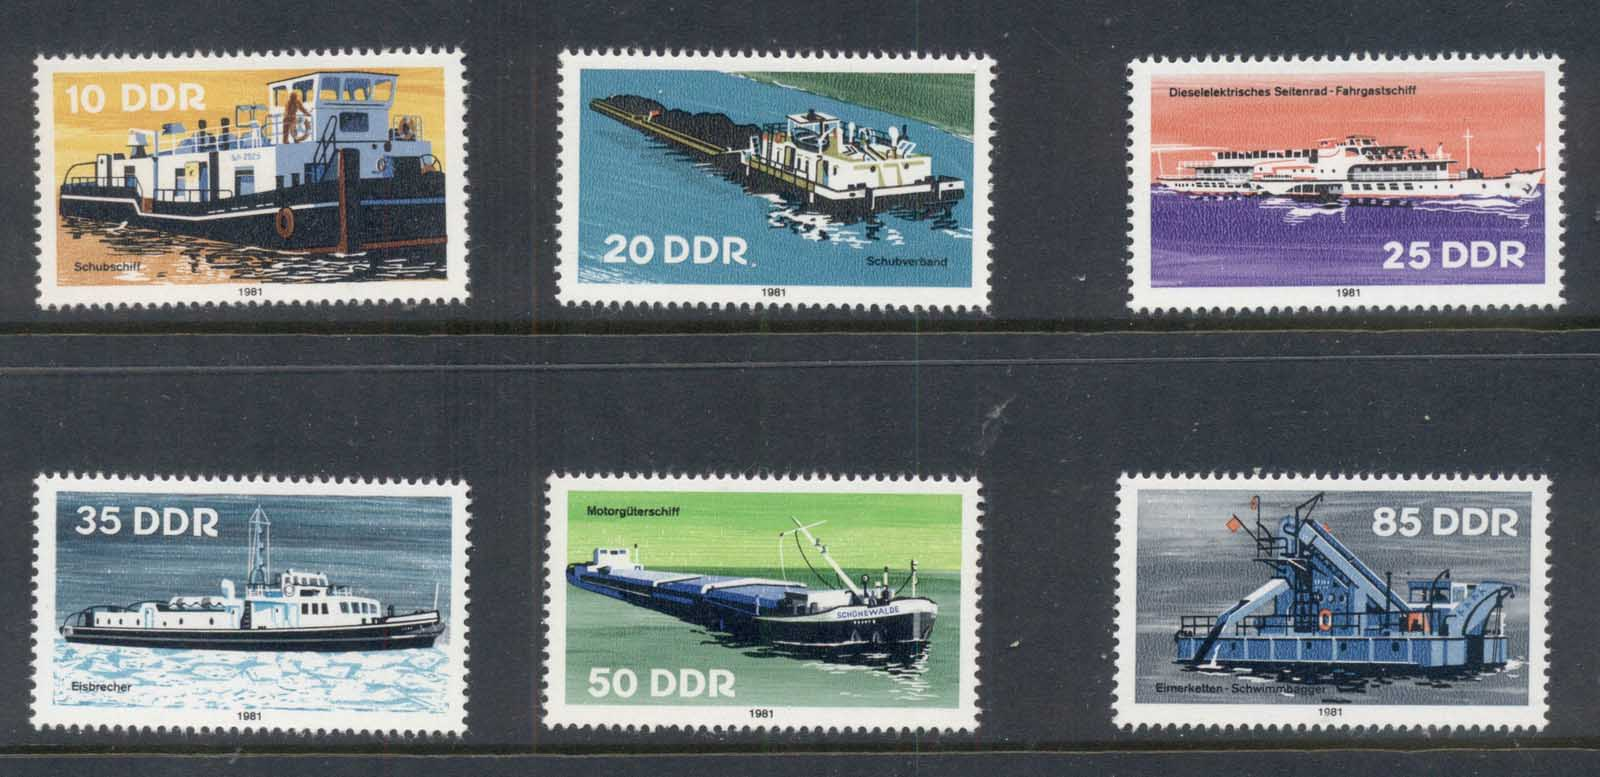 Germany DDR 1981 Ships, Boats MUH